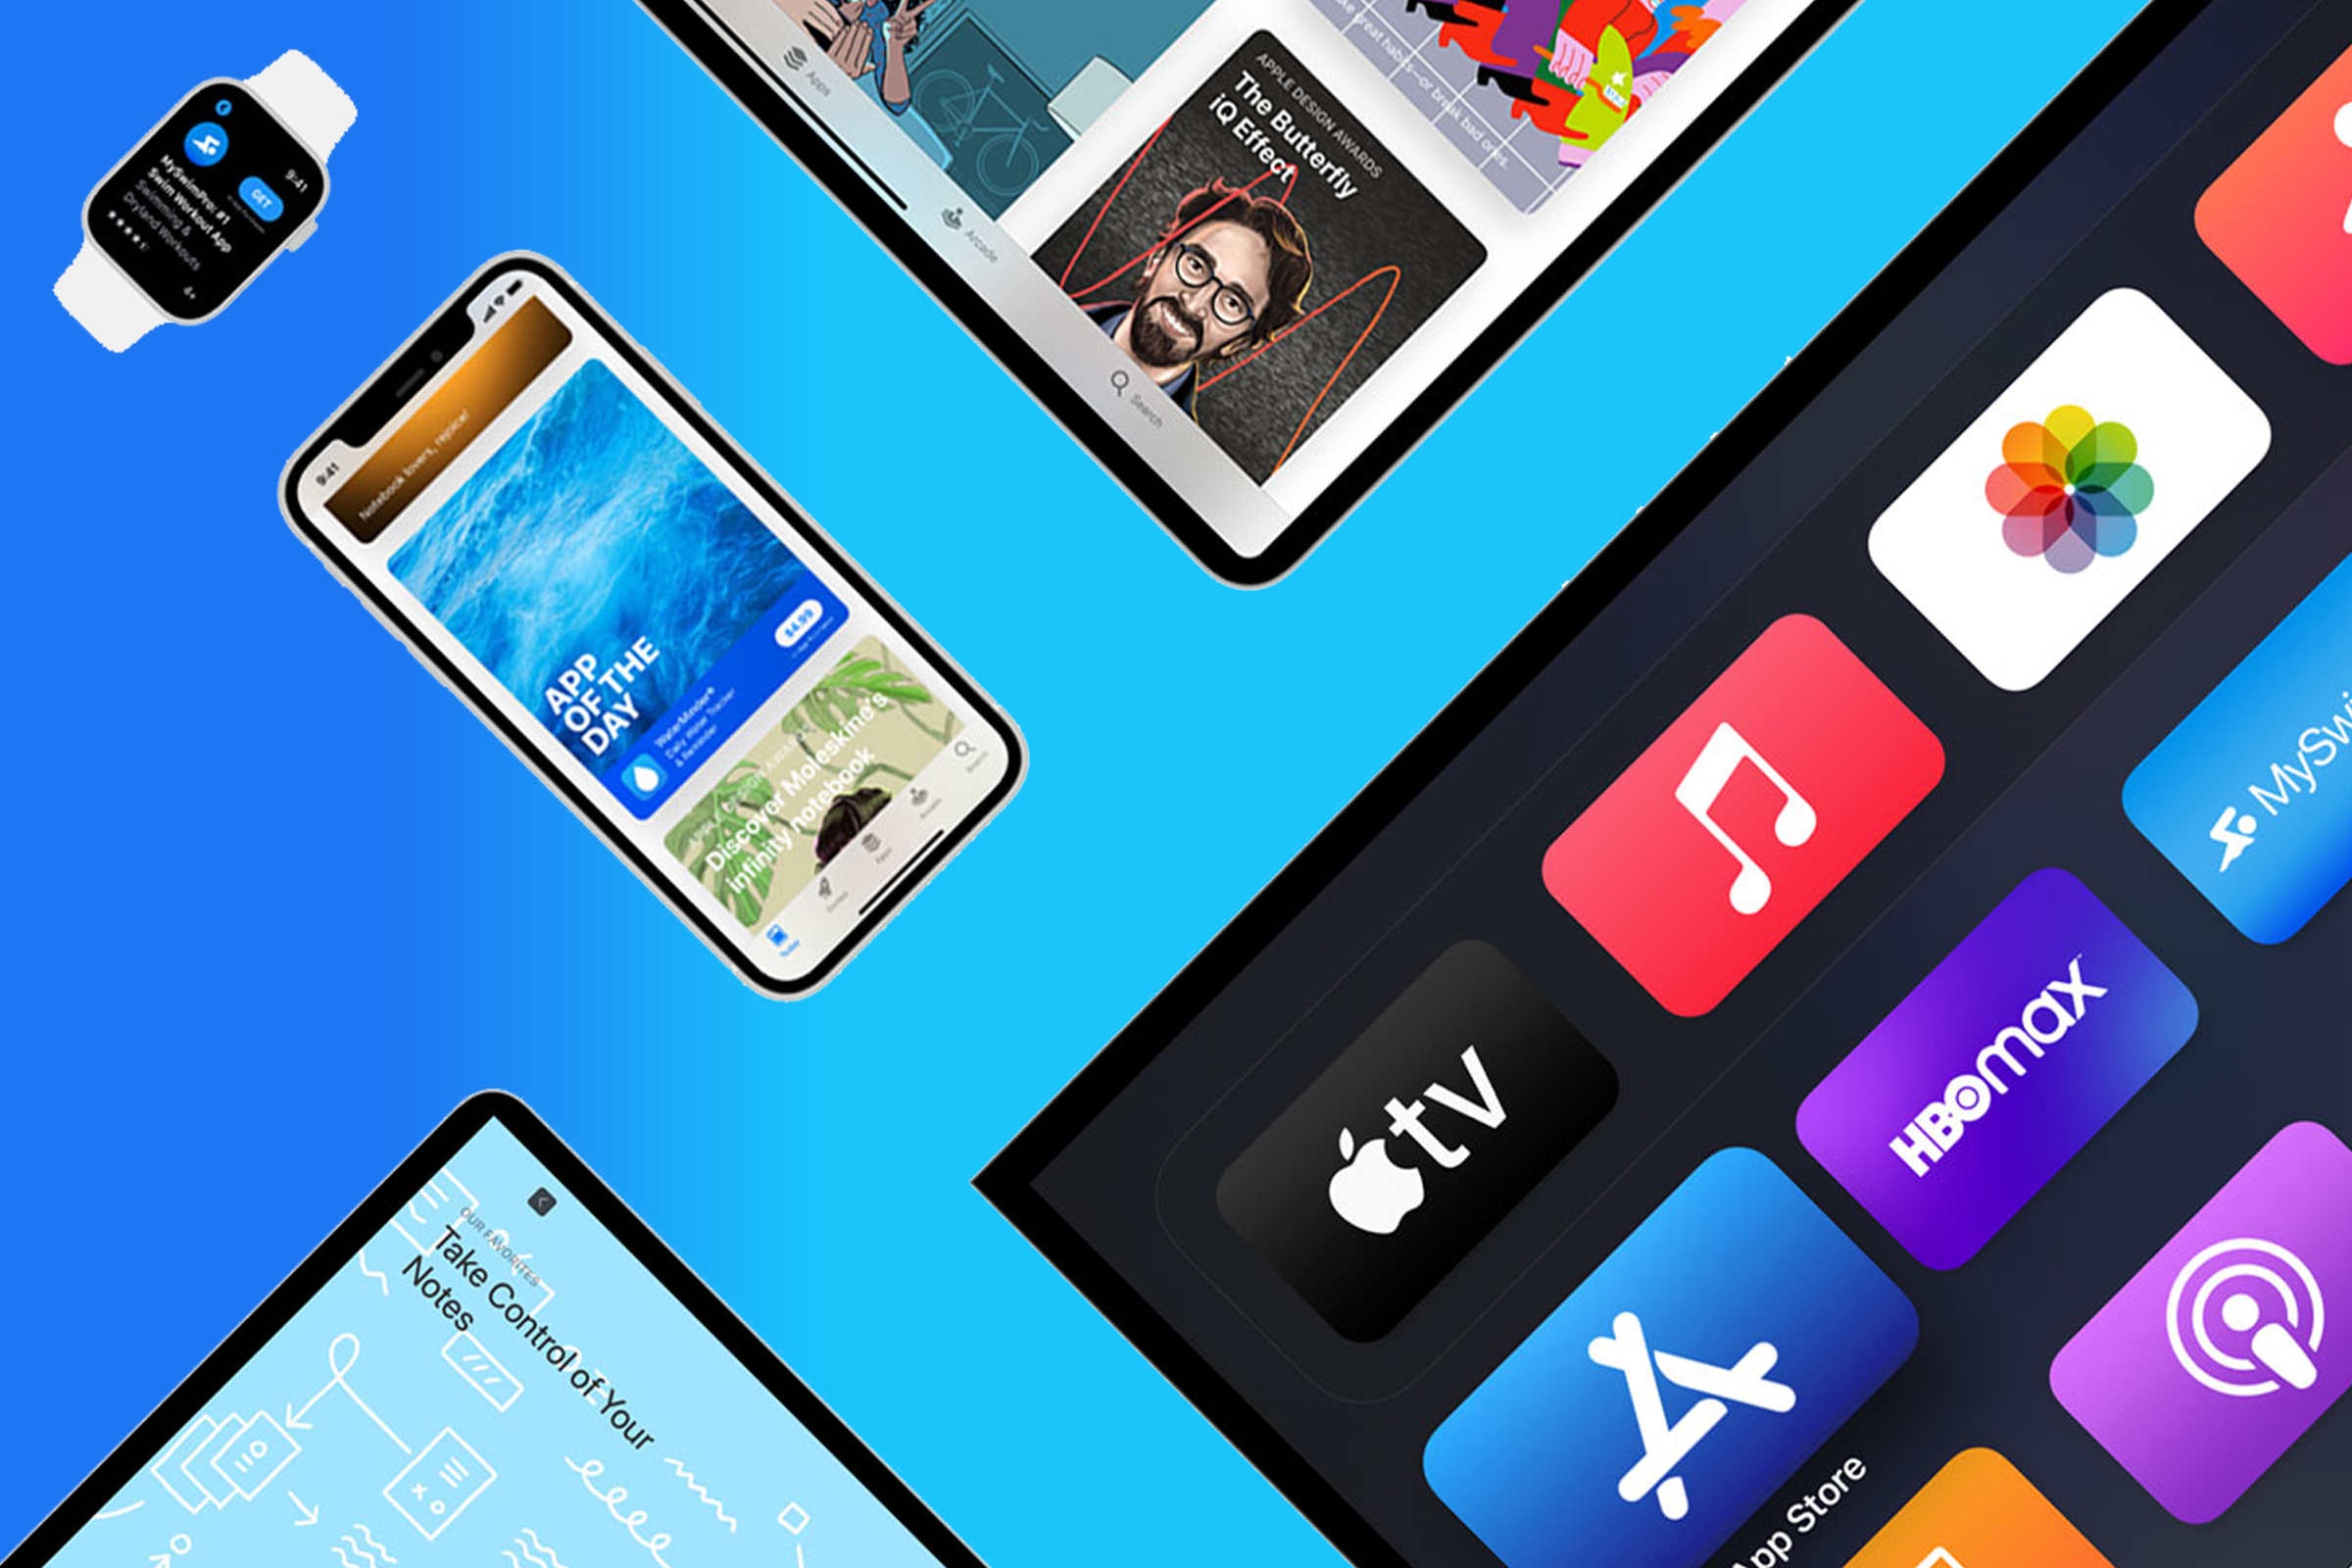 App Store devices